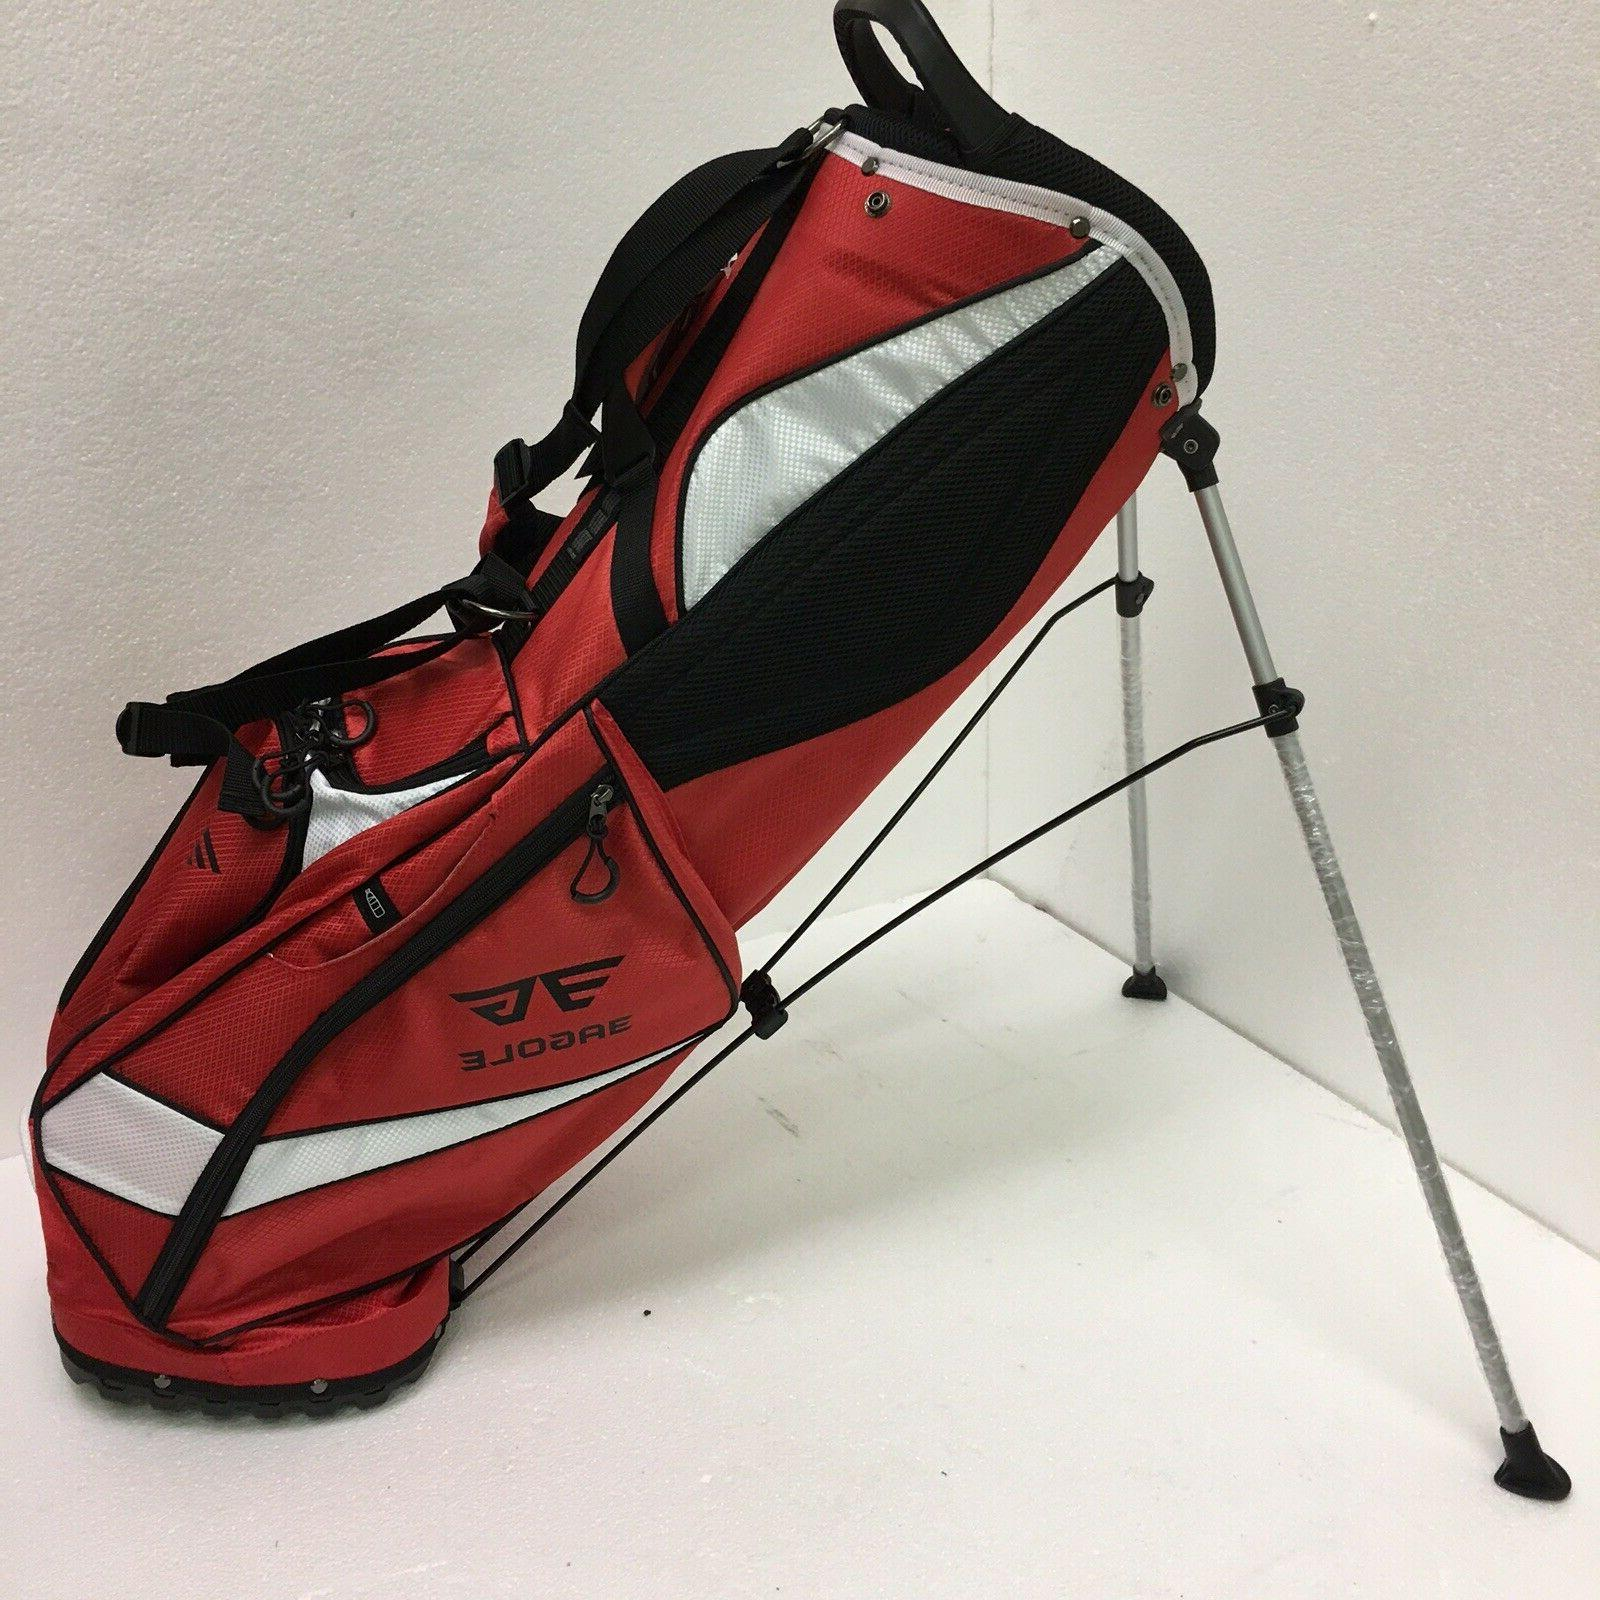 EG Pockets, lbs Golf Stand / Color Red, White